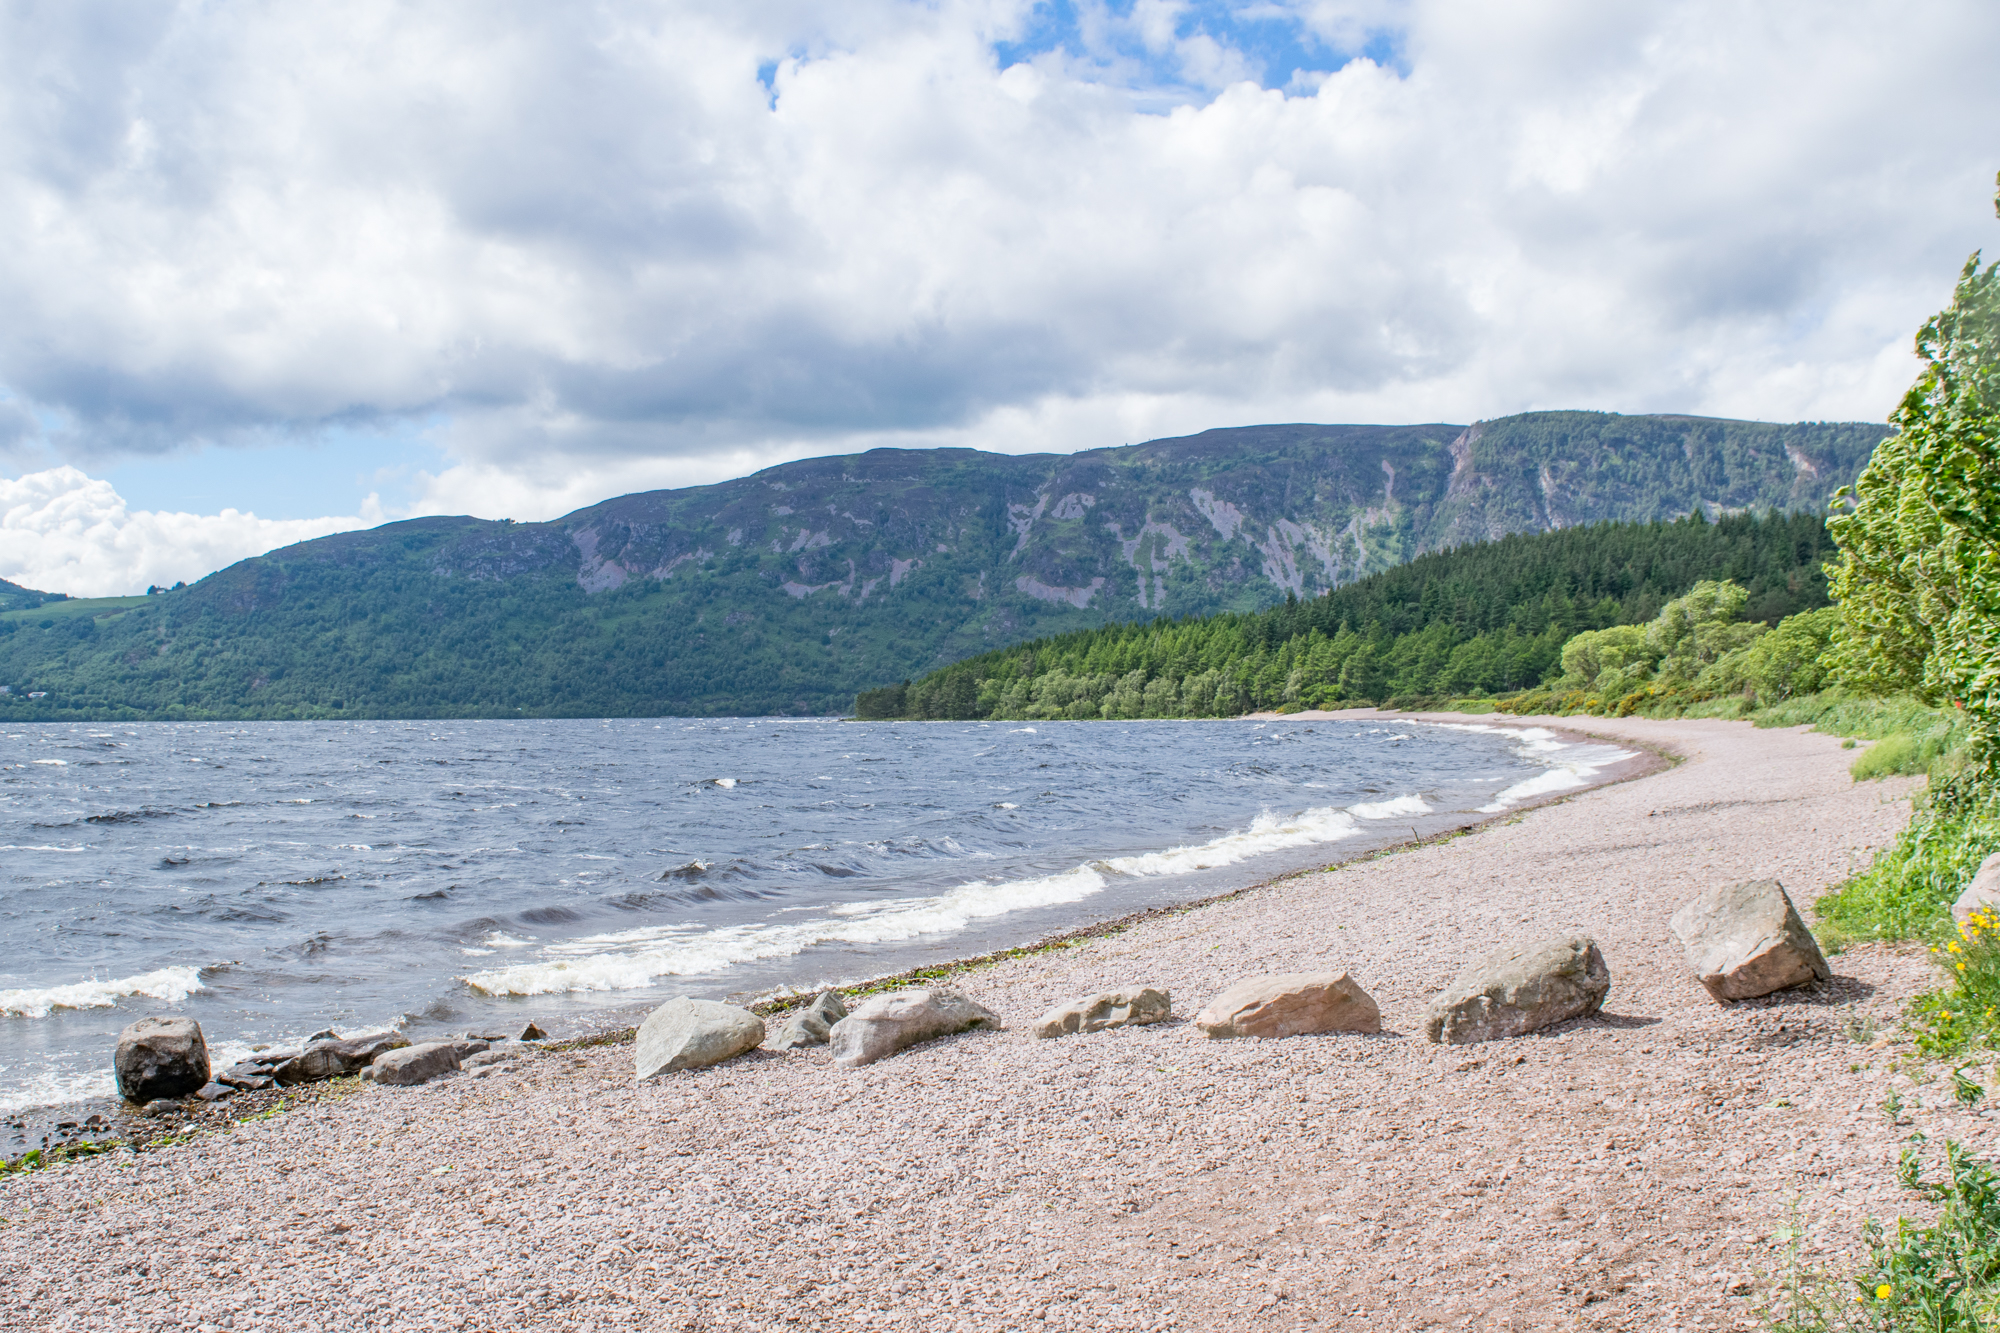 The pebbly beach on the shores of Loch Ness at the Dores Inn